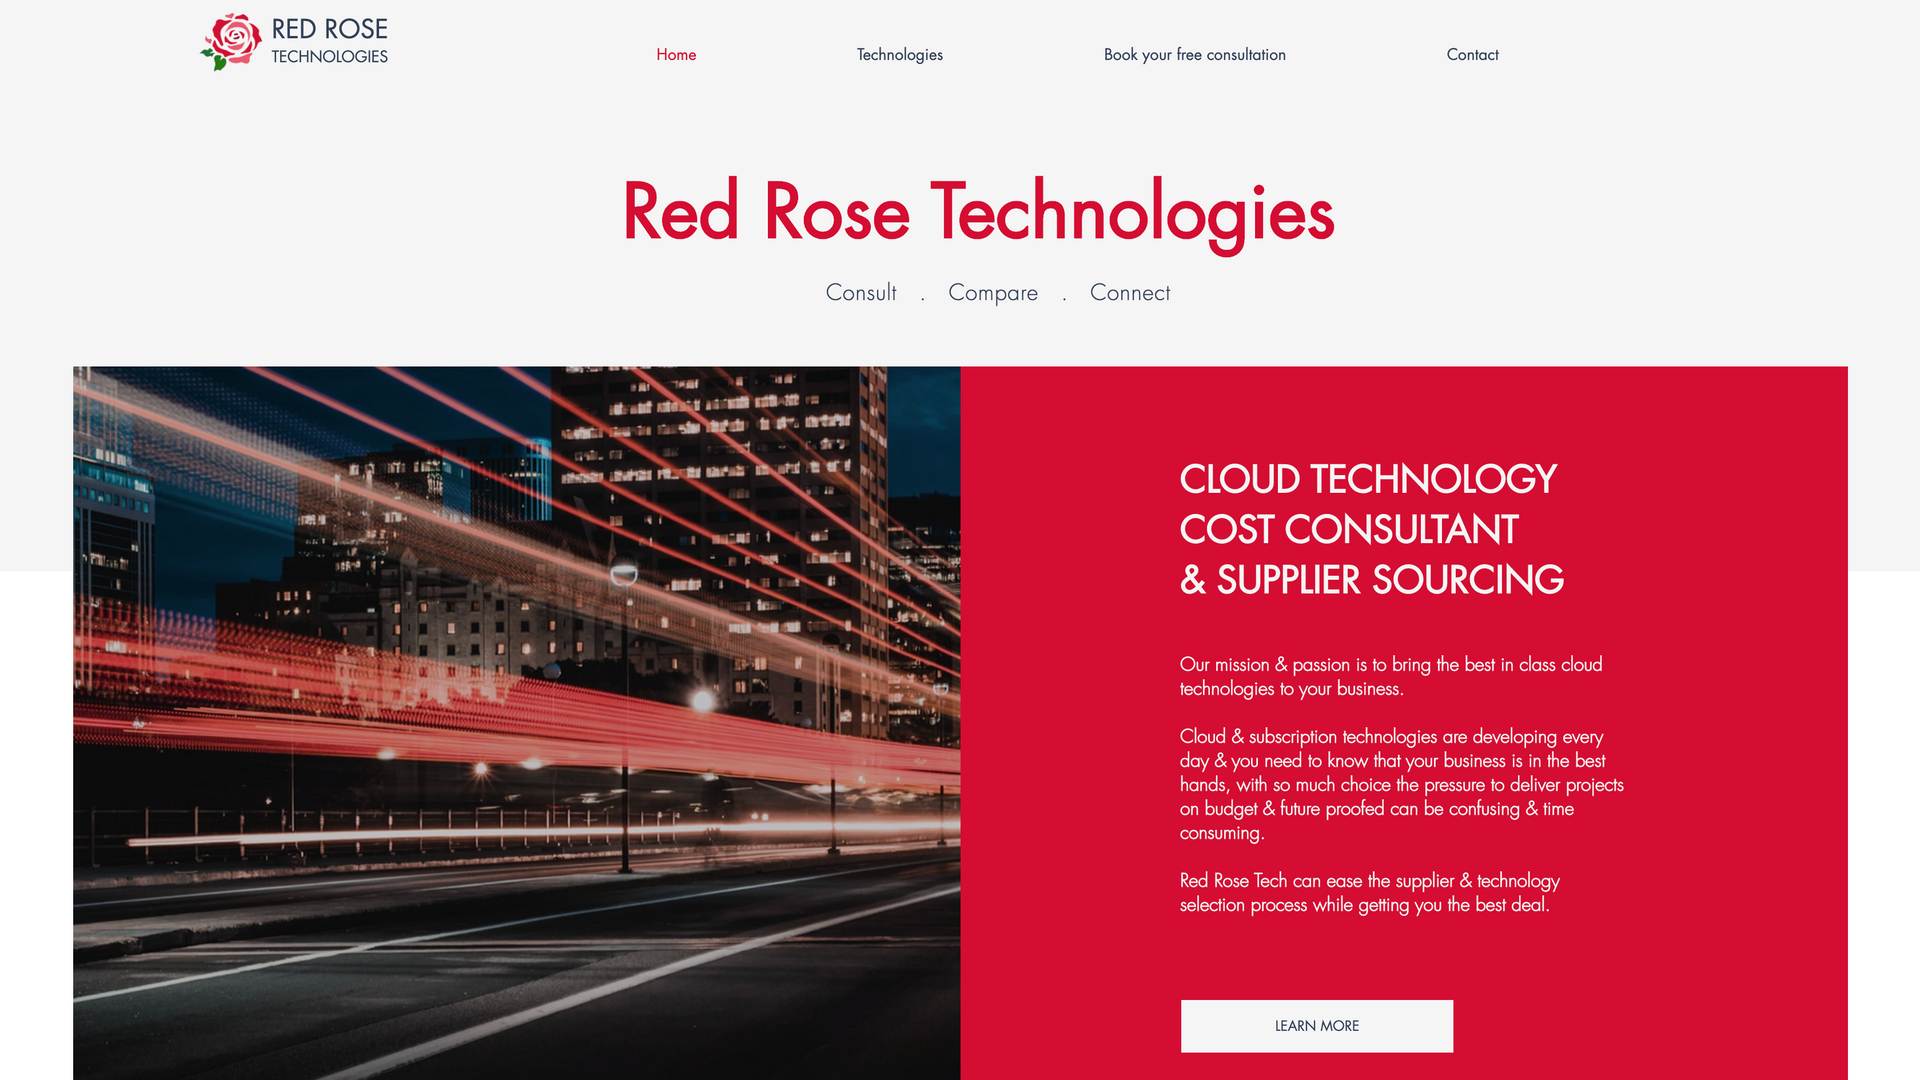 Red Rose Technologies